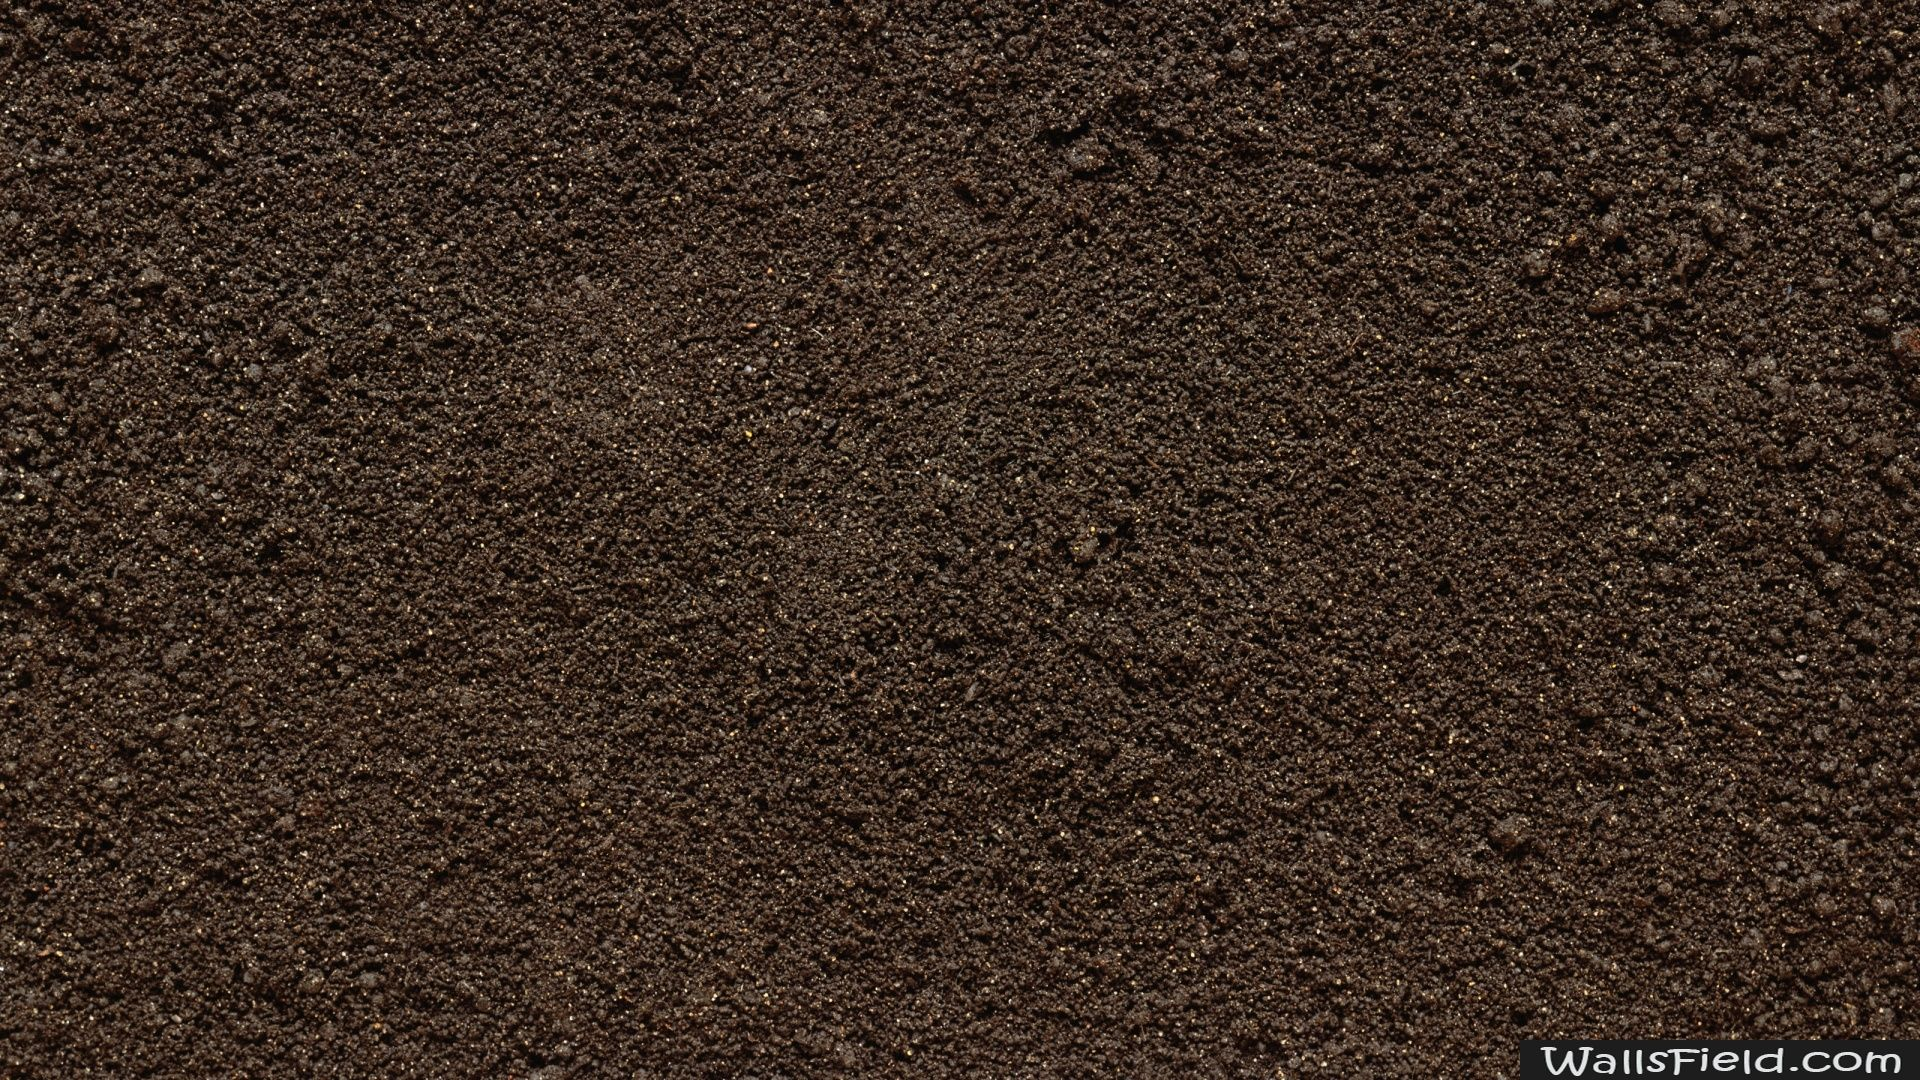 You can view download and comment on soil wallpaper free for Soil texture